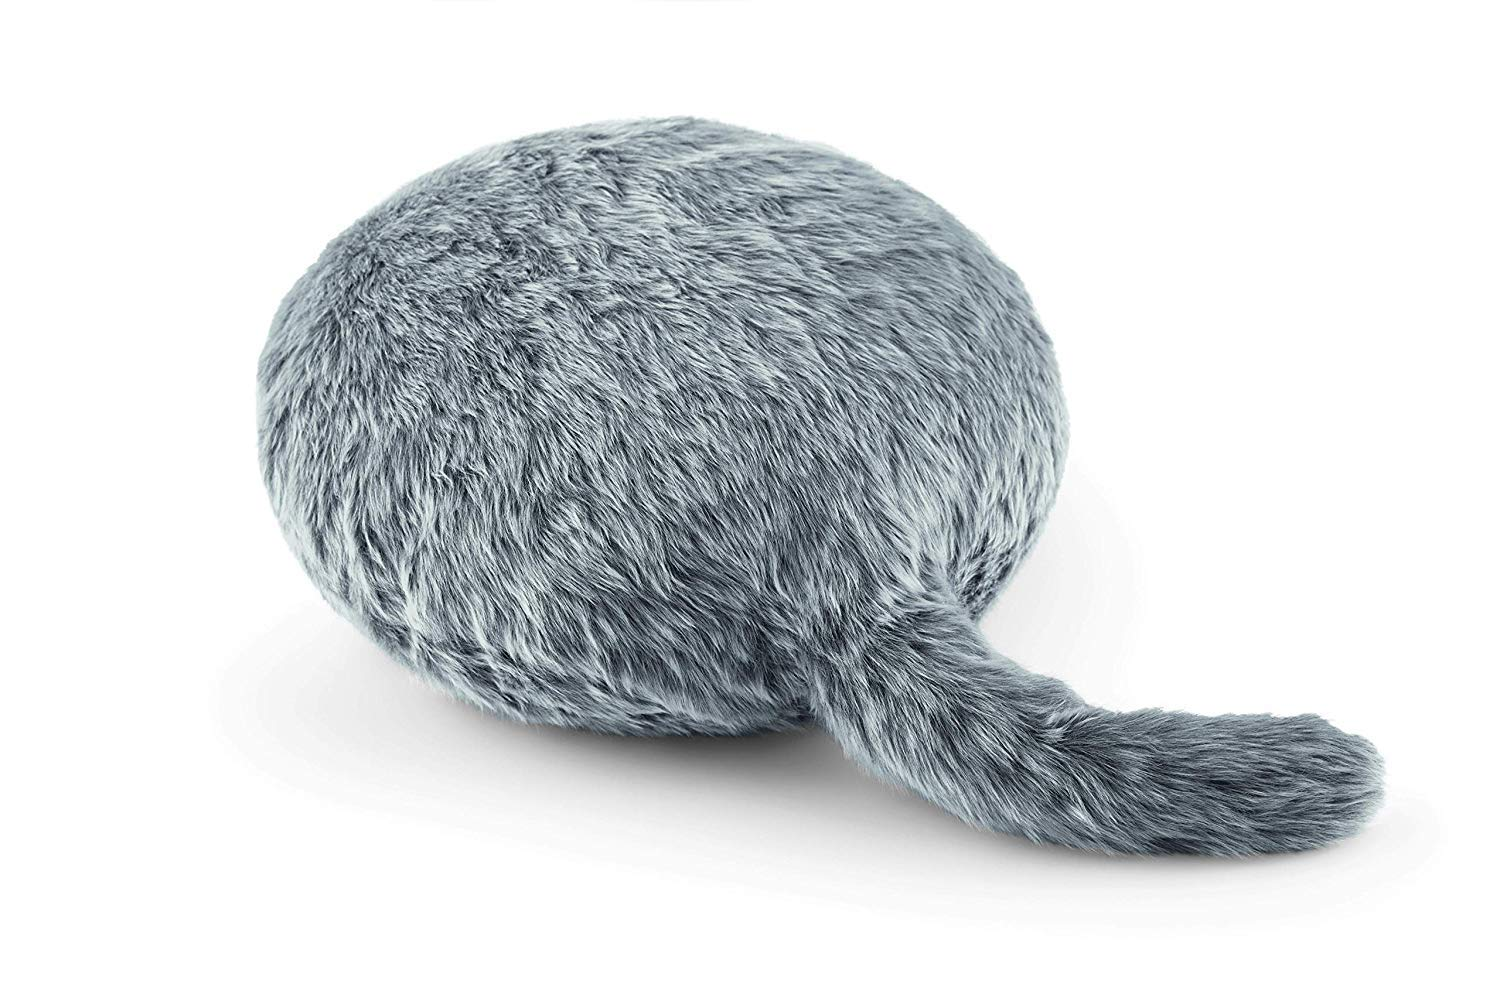 Qoobo - Therapeutic robot pillow with a tail (Husky Gray)